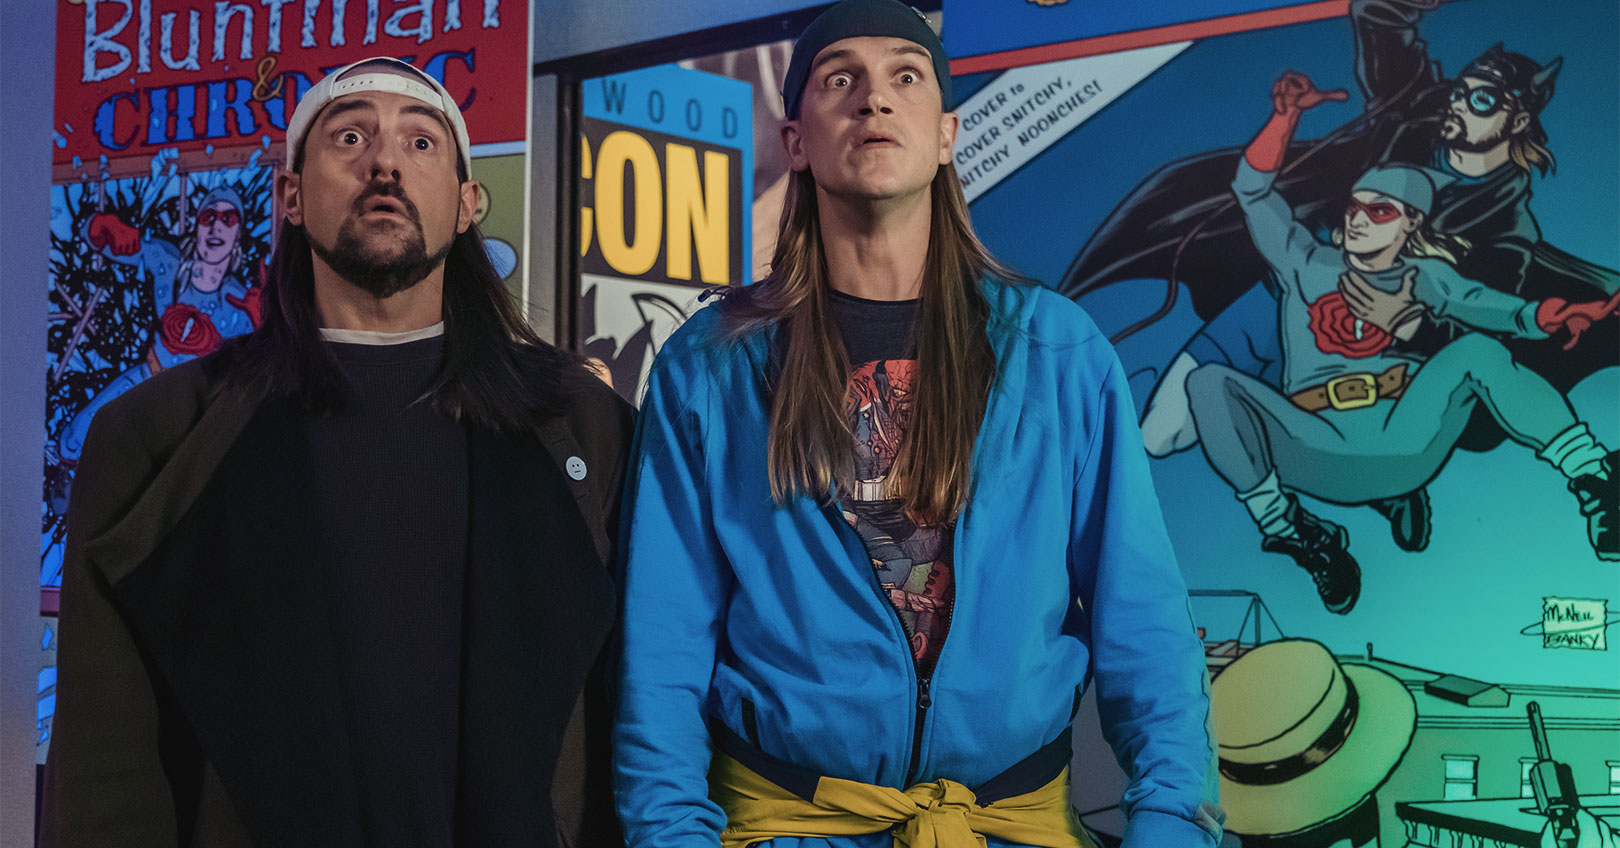 Jay & Silent Bob Reboot - Kevin Smith and Jason Mewes